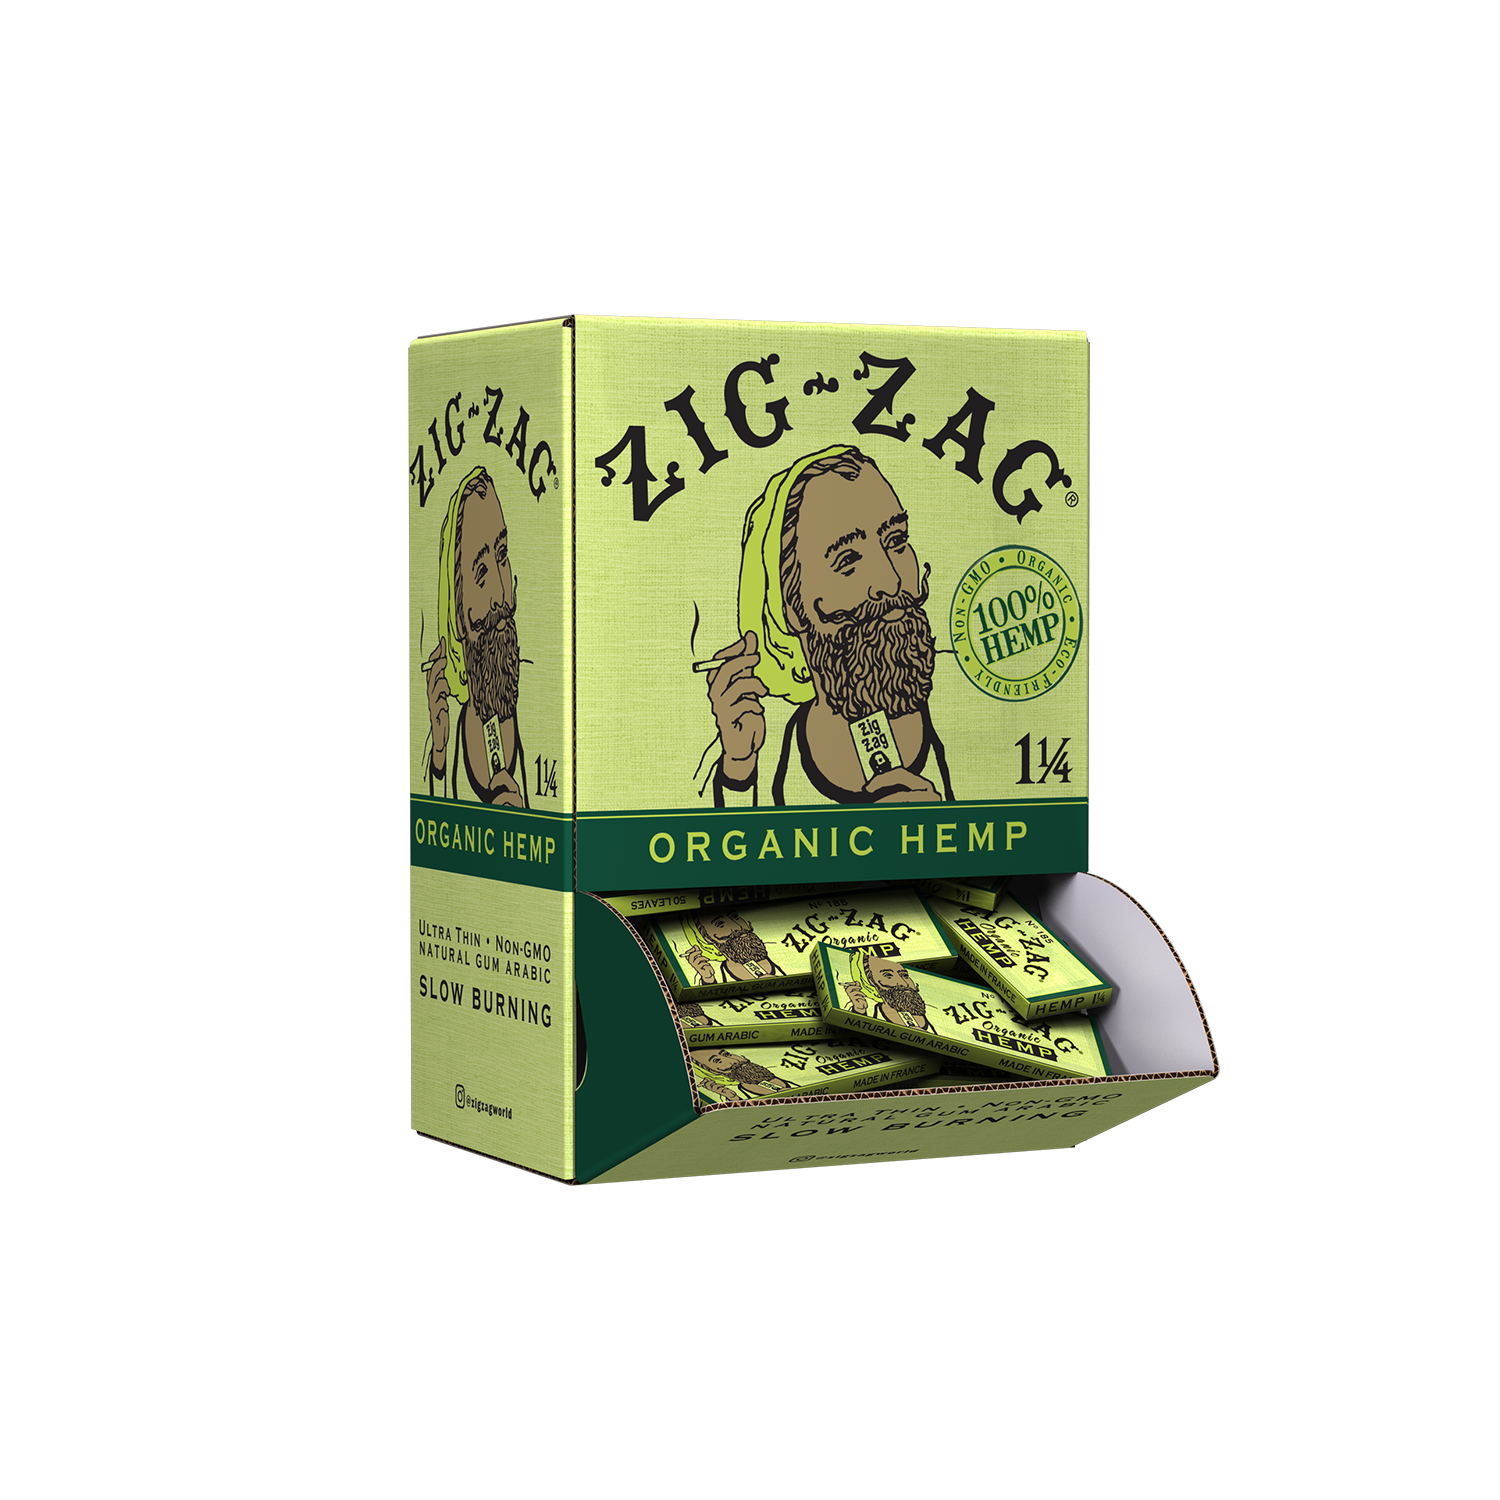 1 1/4 Organic Hemp Papers Carton